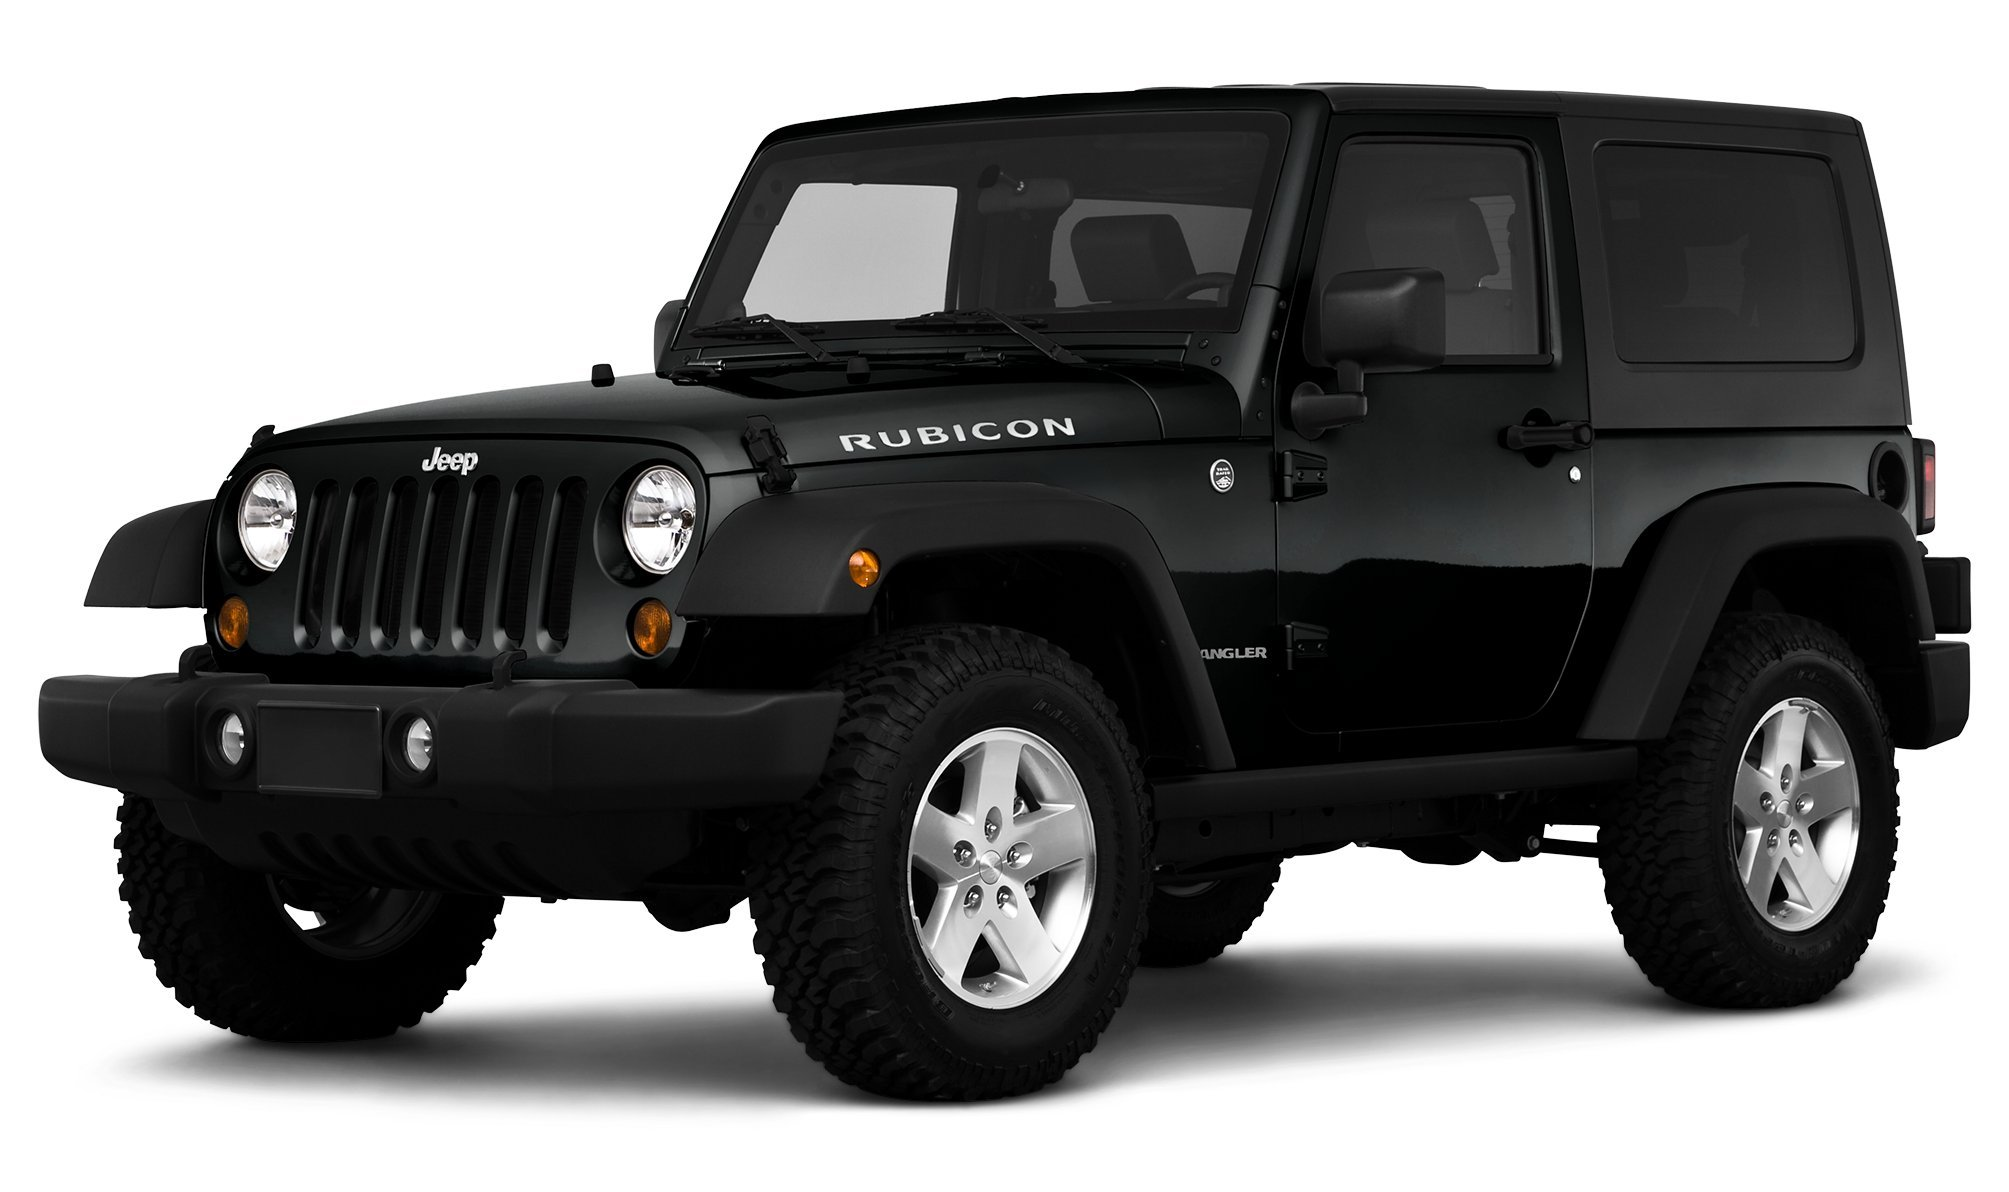 Amazon.com: 2010 Jeep Wrangler Reviews, Images, and Specs: Vehicles